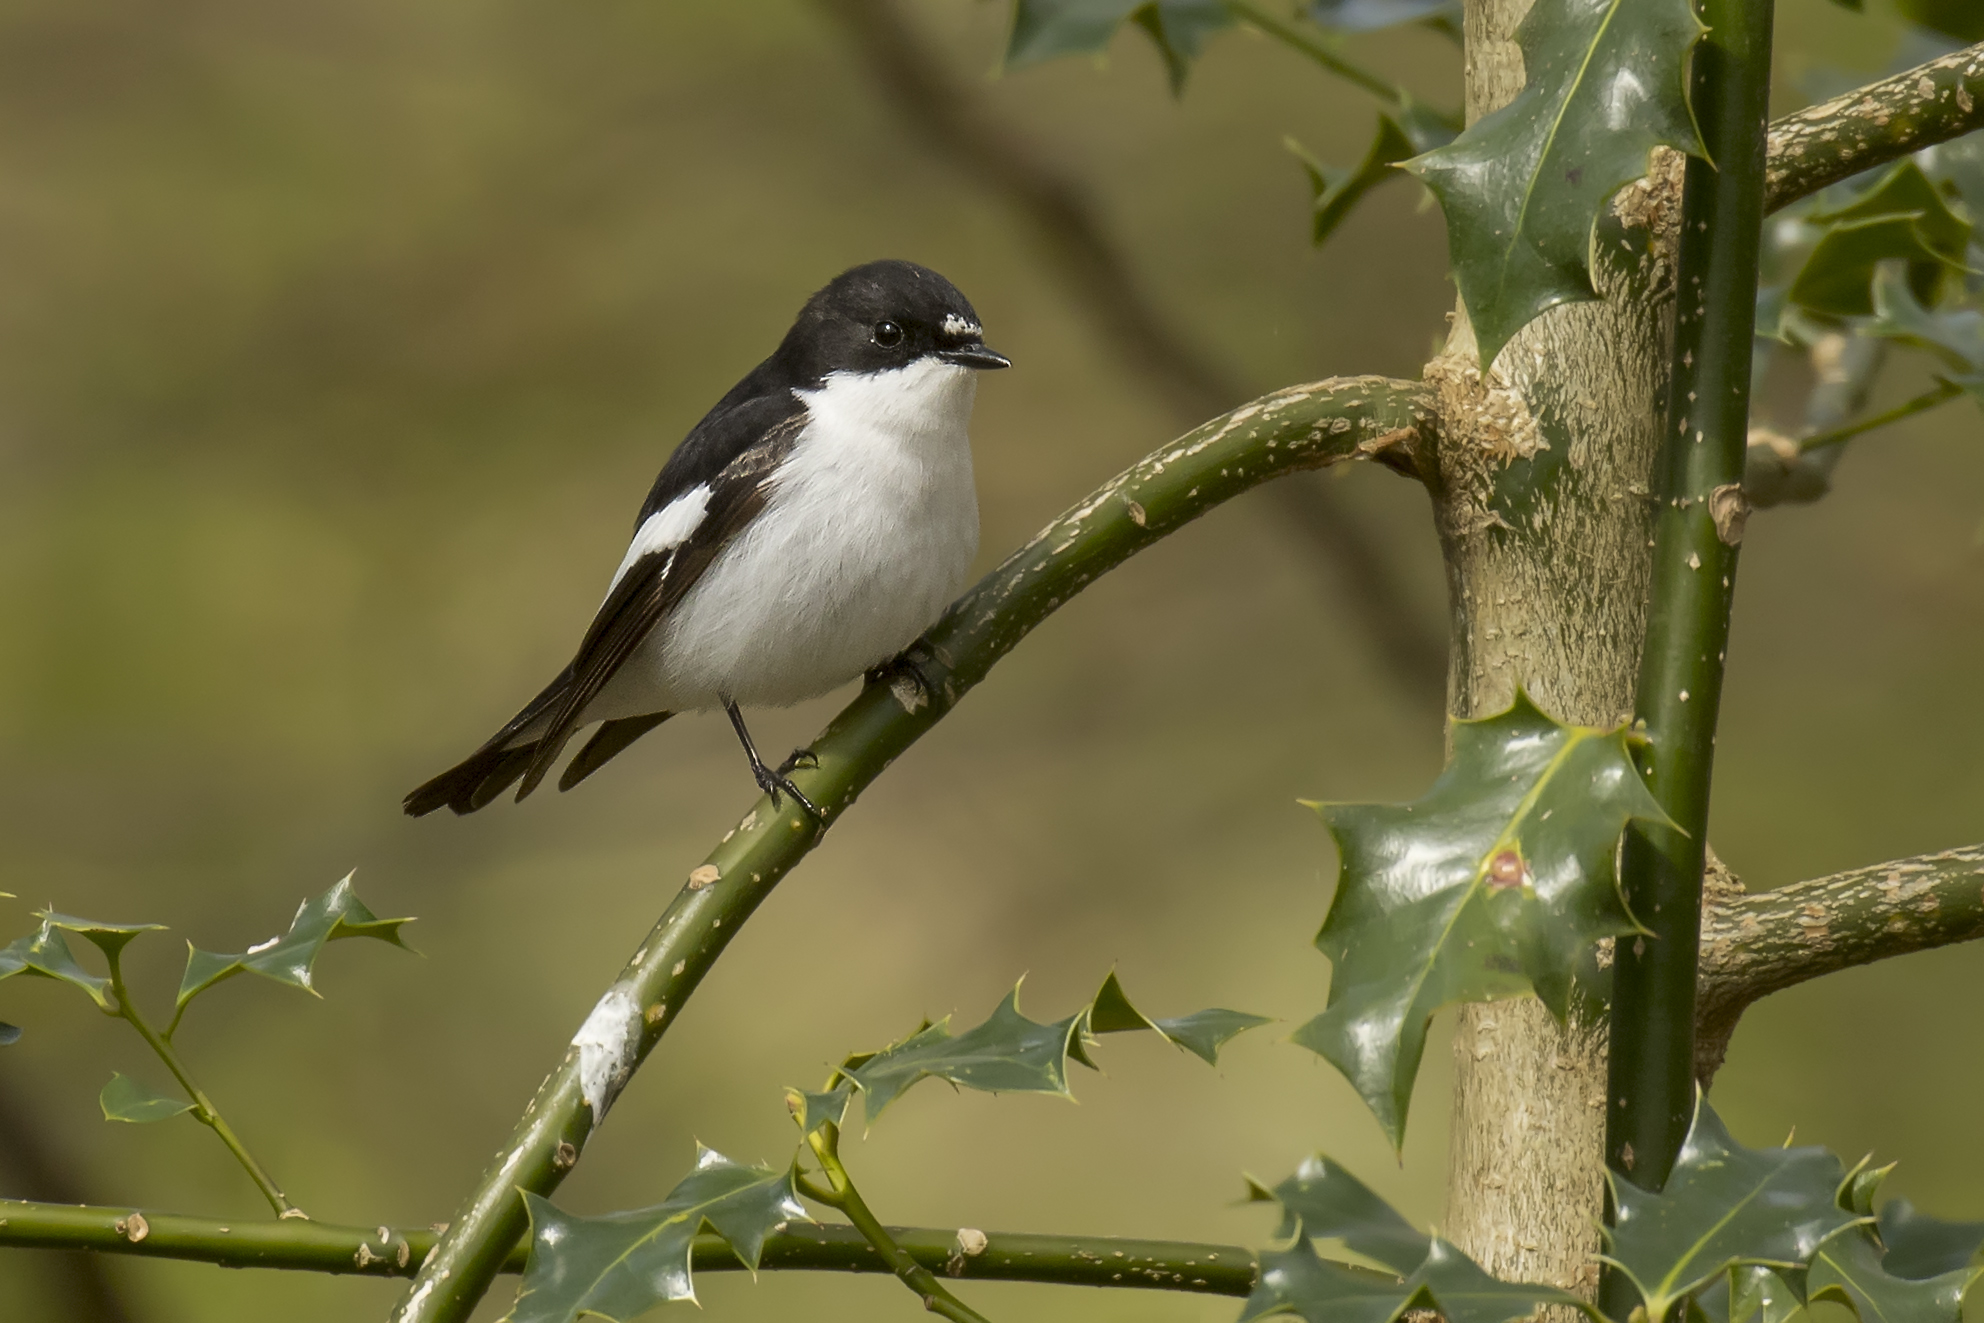 Male Pied Flycatcher, still waiting for a female